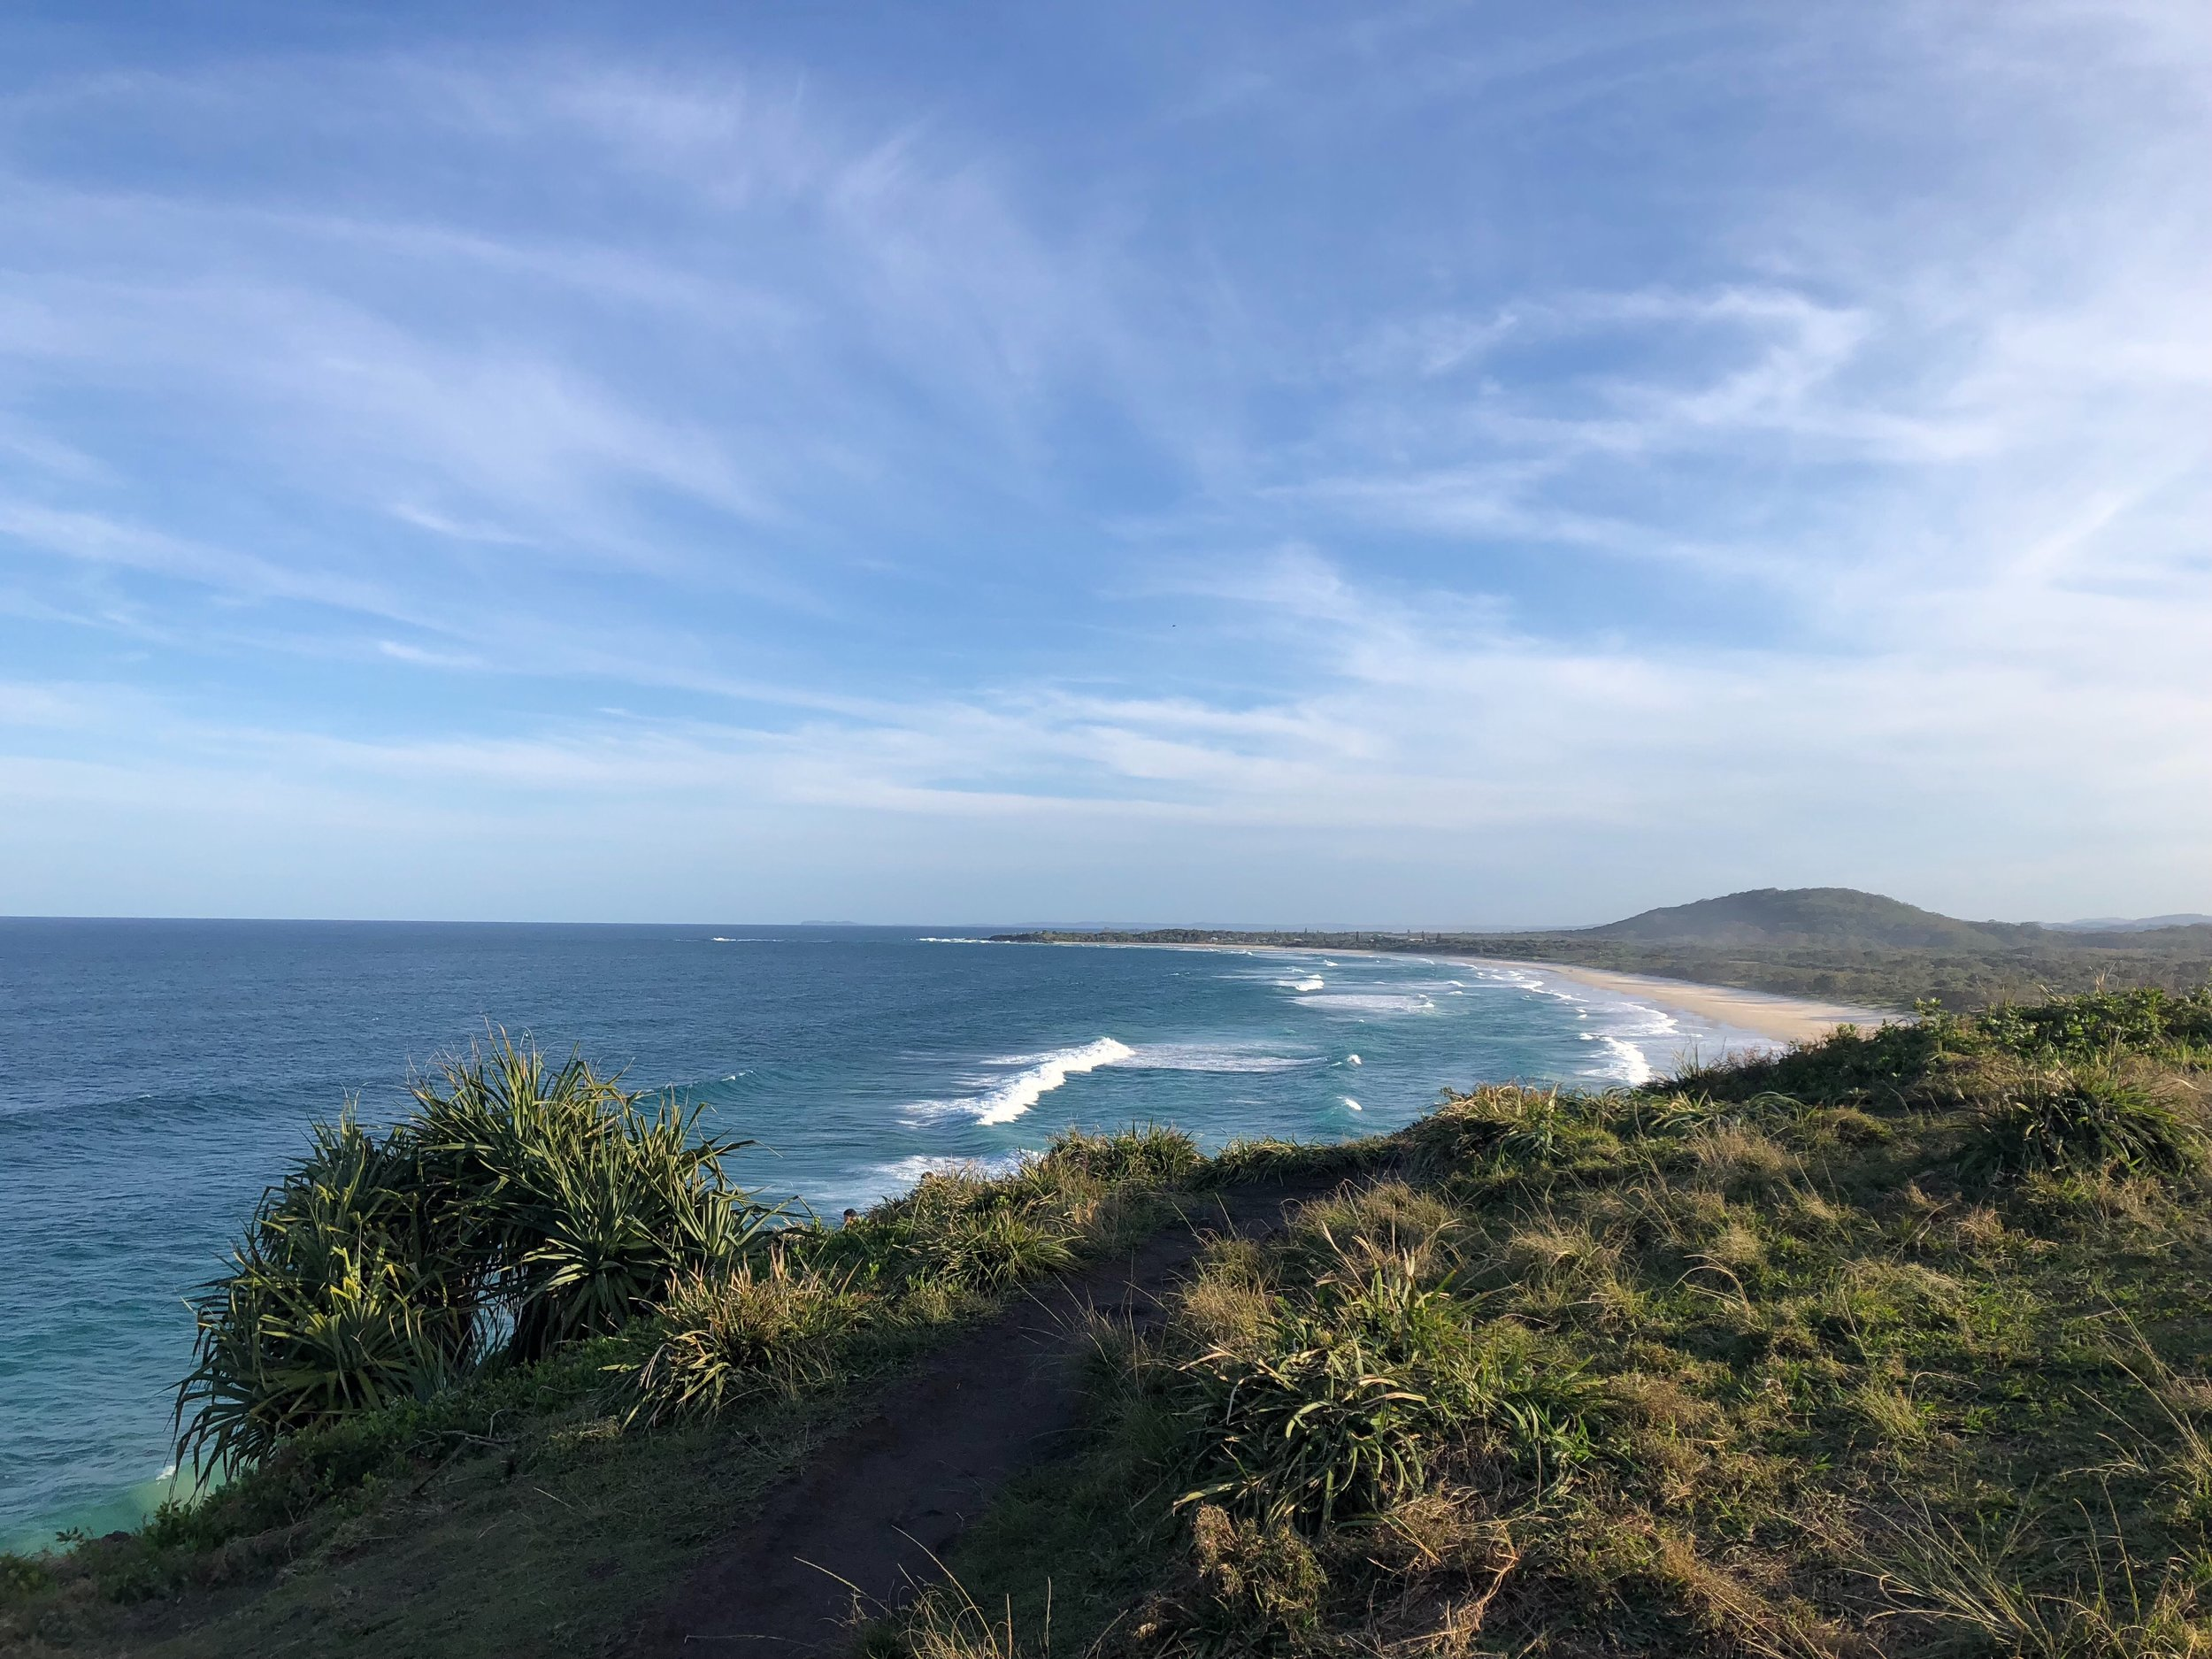 Daily walk up to the top of Norrie's Headland offer these stunning views